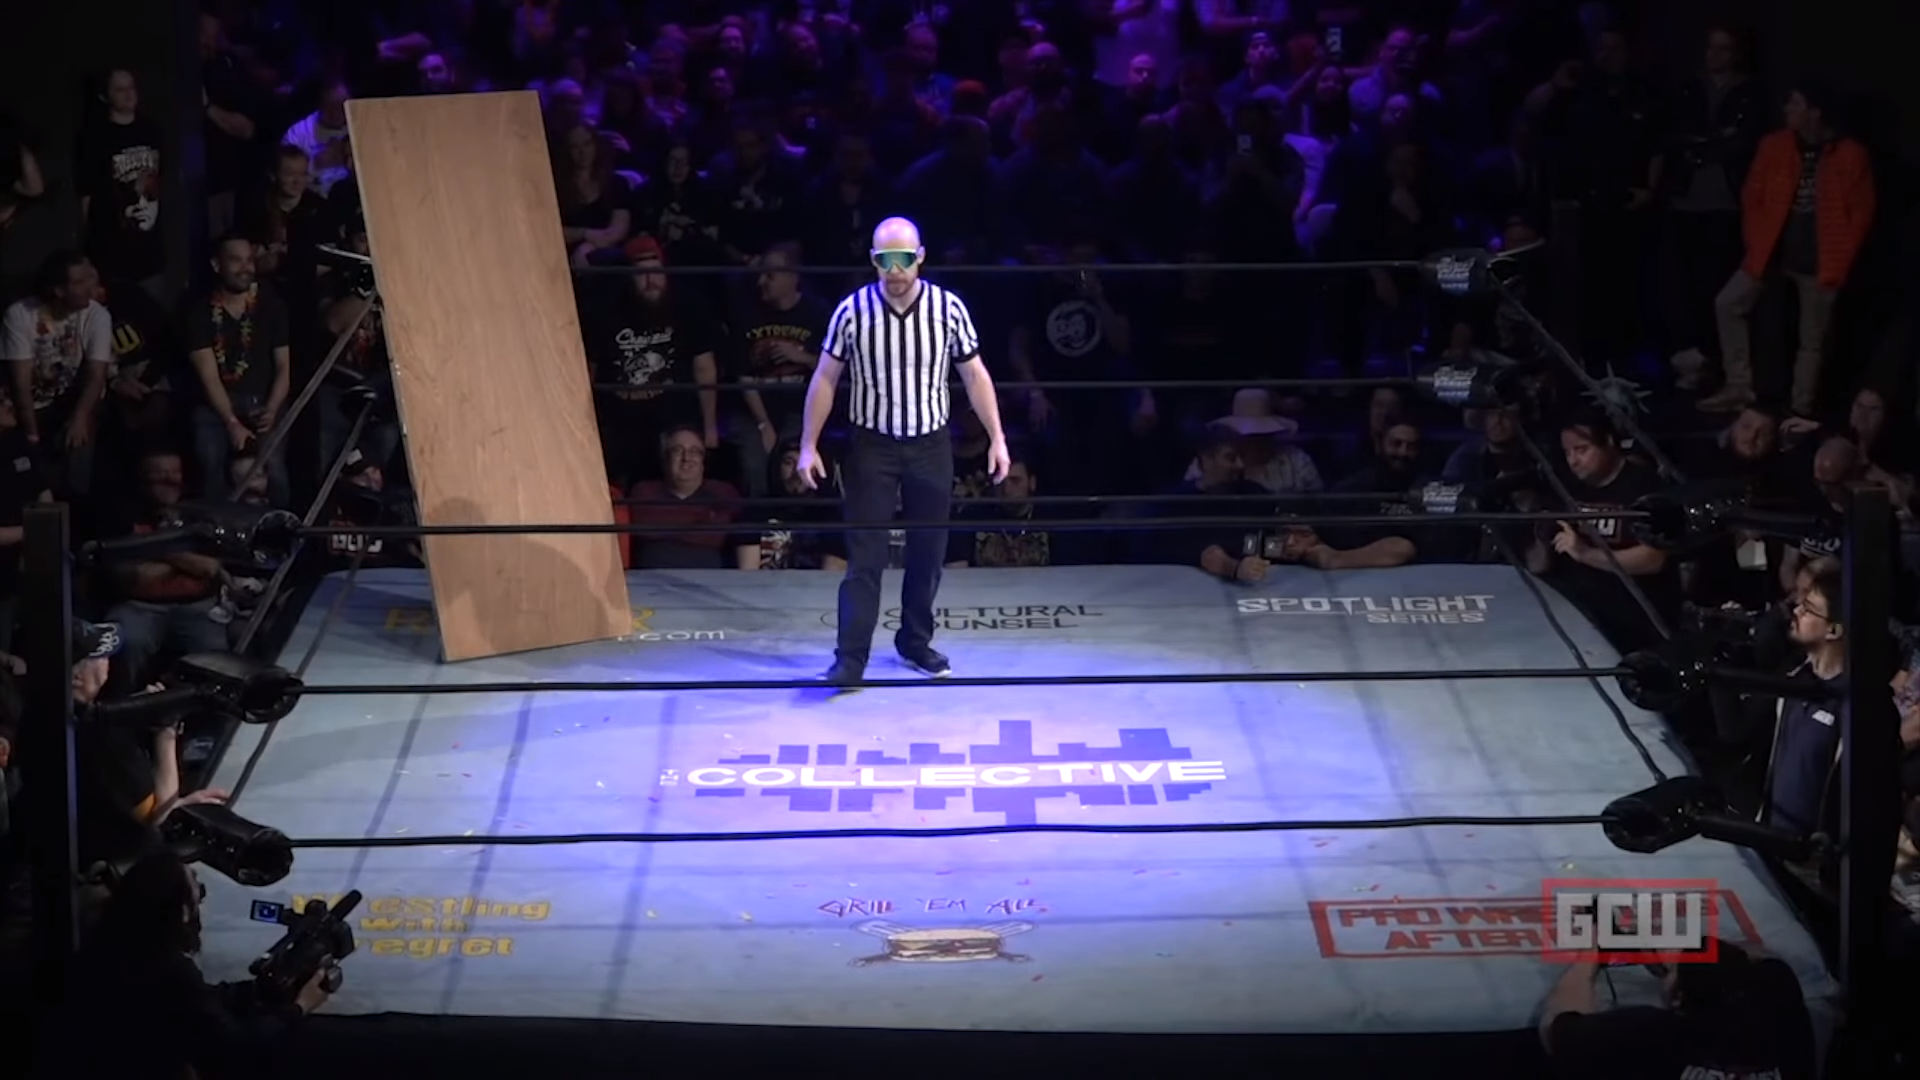 Invisible Stan vs. Invisible Man: The dynamics and power of a crowd in wrestling